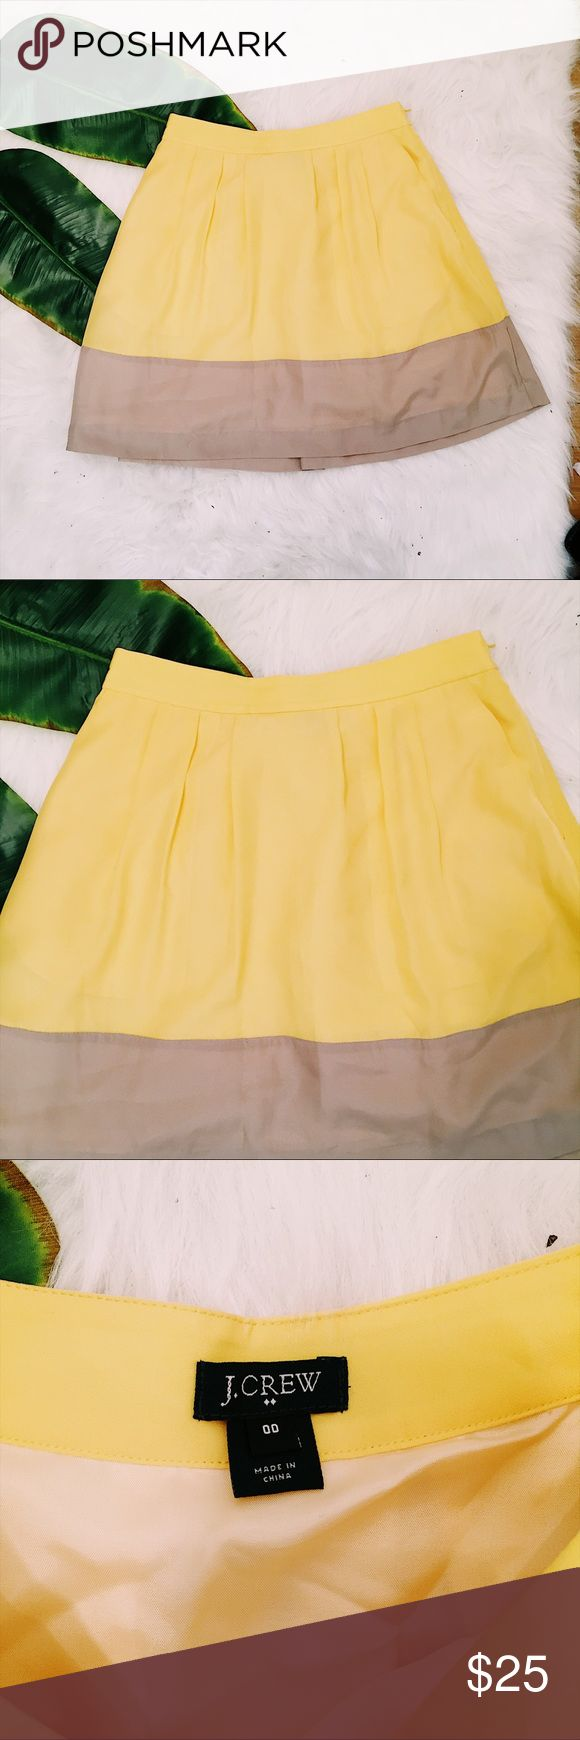 """Women's J. Crew Colorblock Skirt Yellow Size 00 Flawless J Crew yellow and beige silky pleated colorblock skirt   Silky and lightweight non-stretch poly Fully lined in silky solid yellow acetate Non-elasticized waist - 13"""" flat 17"""" long Concealed left side zipper with top hook and eye Side pockets Size 00  📷 Please see all photos - we do our best to accurately capture condition, measurements & all blemishes in our photos 📷   🌼 Smoke/pet free home 🌼 🌸 All clothing is freshly laundered…"""